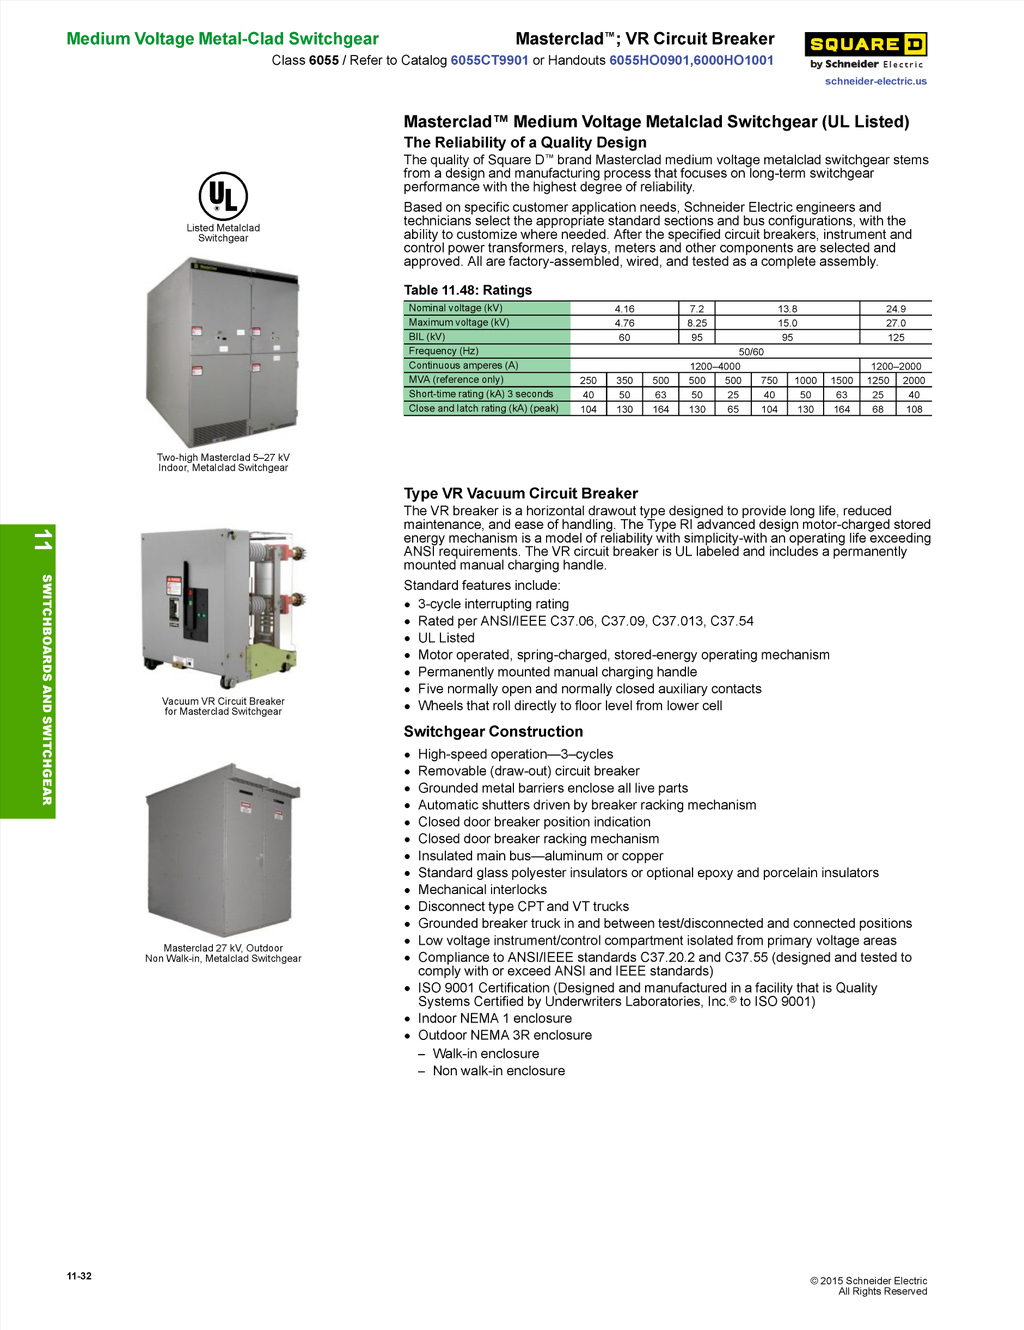 Schneider Electric Section 11